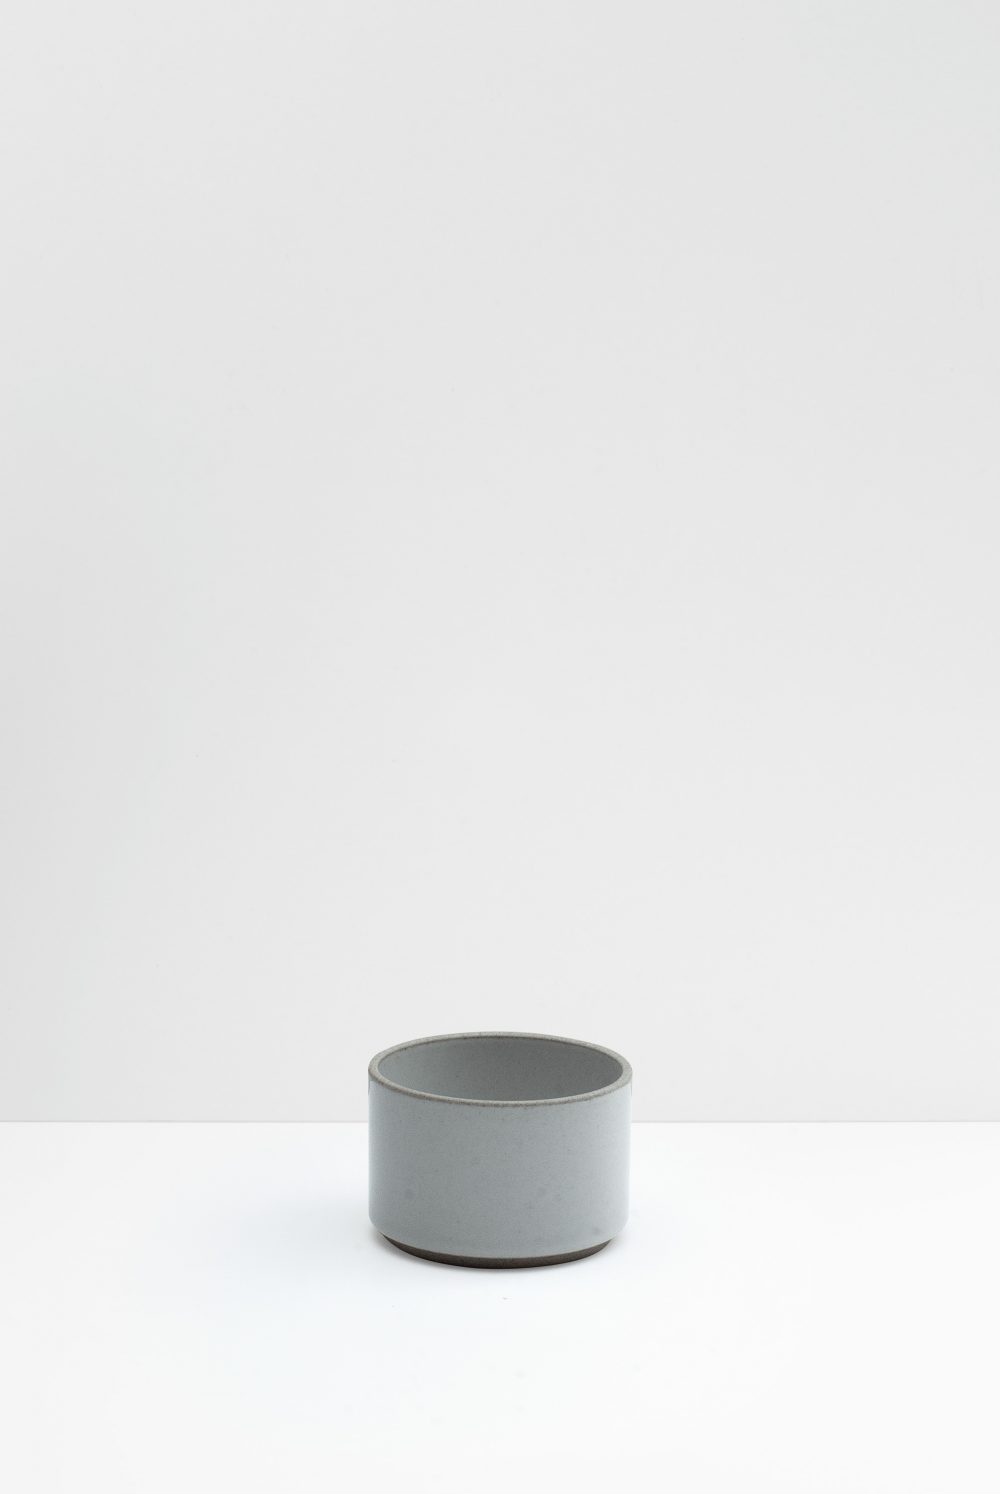 Hasami Porcelain Cup Gray Glazed